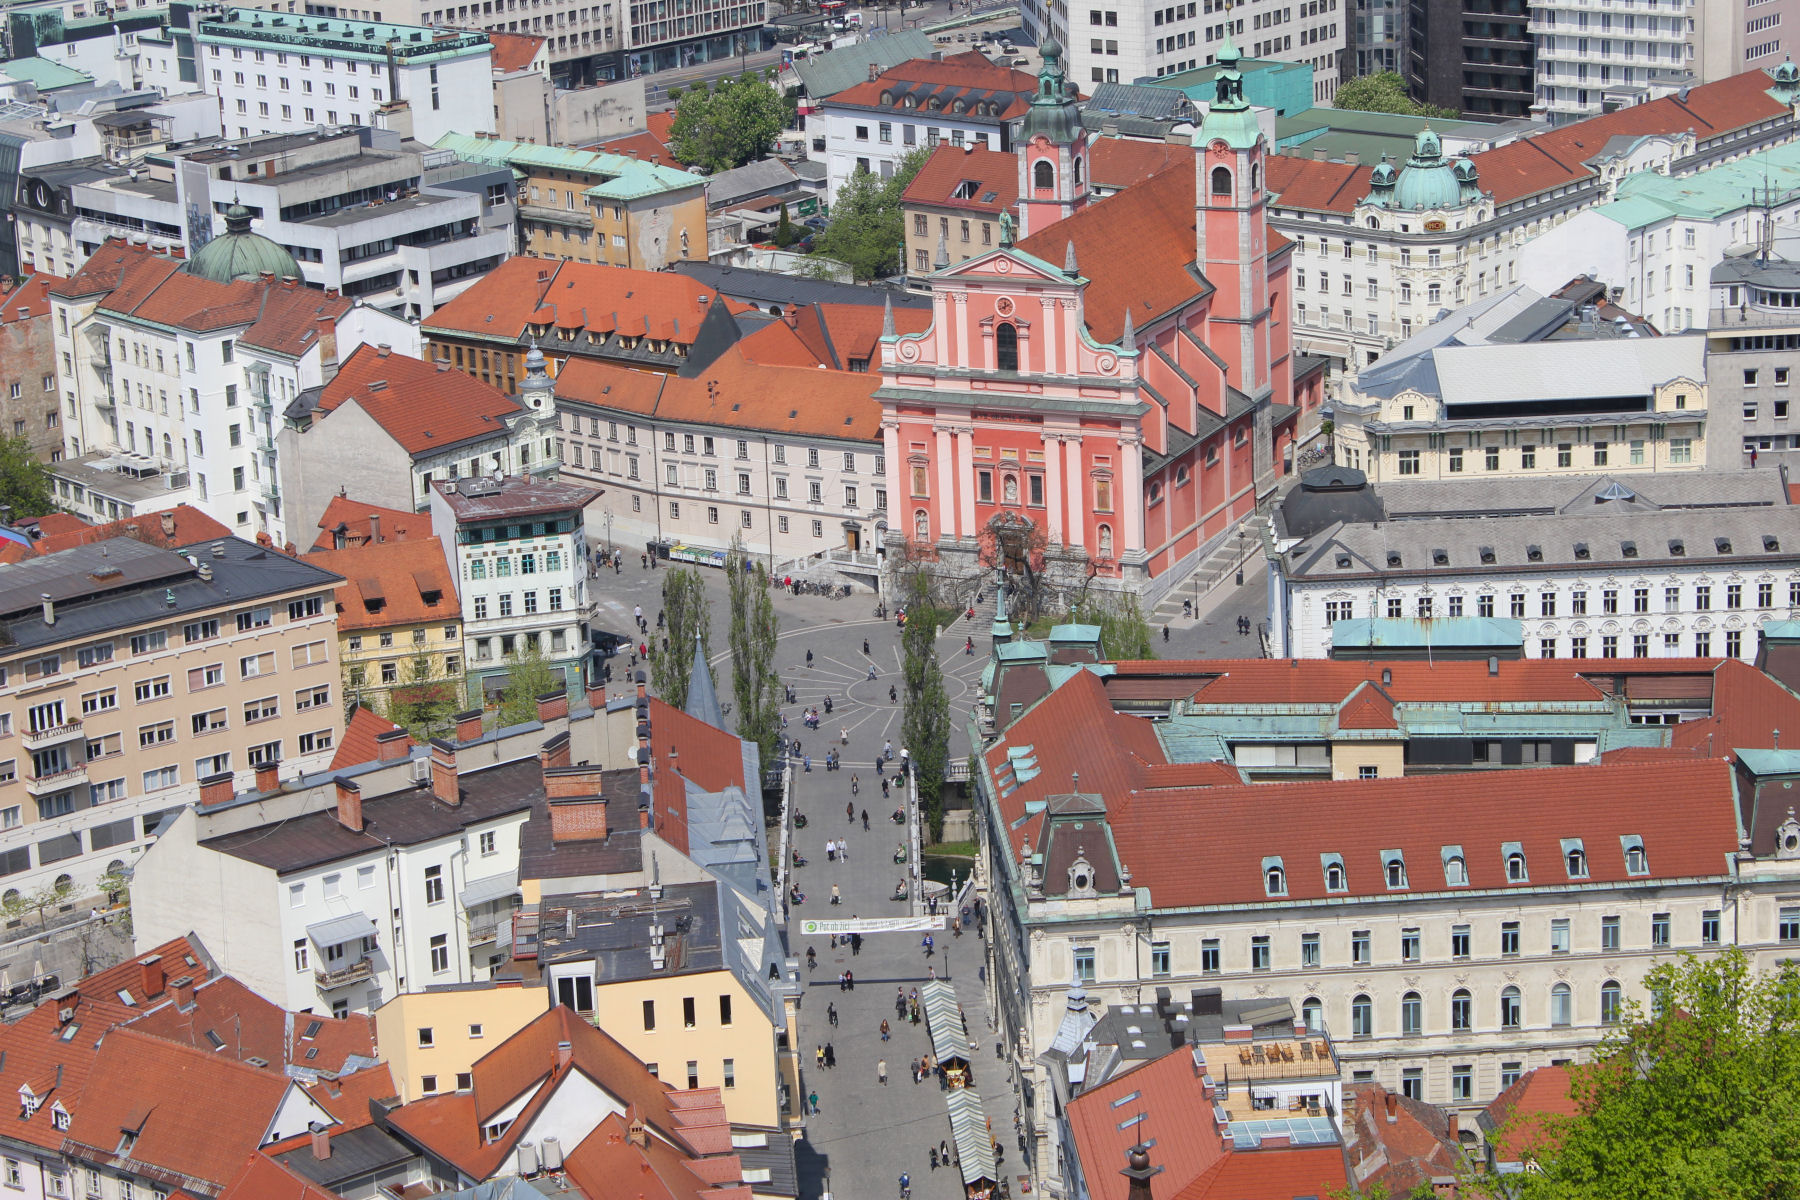 Ljubljana is a charming place and also incredibly picturesque